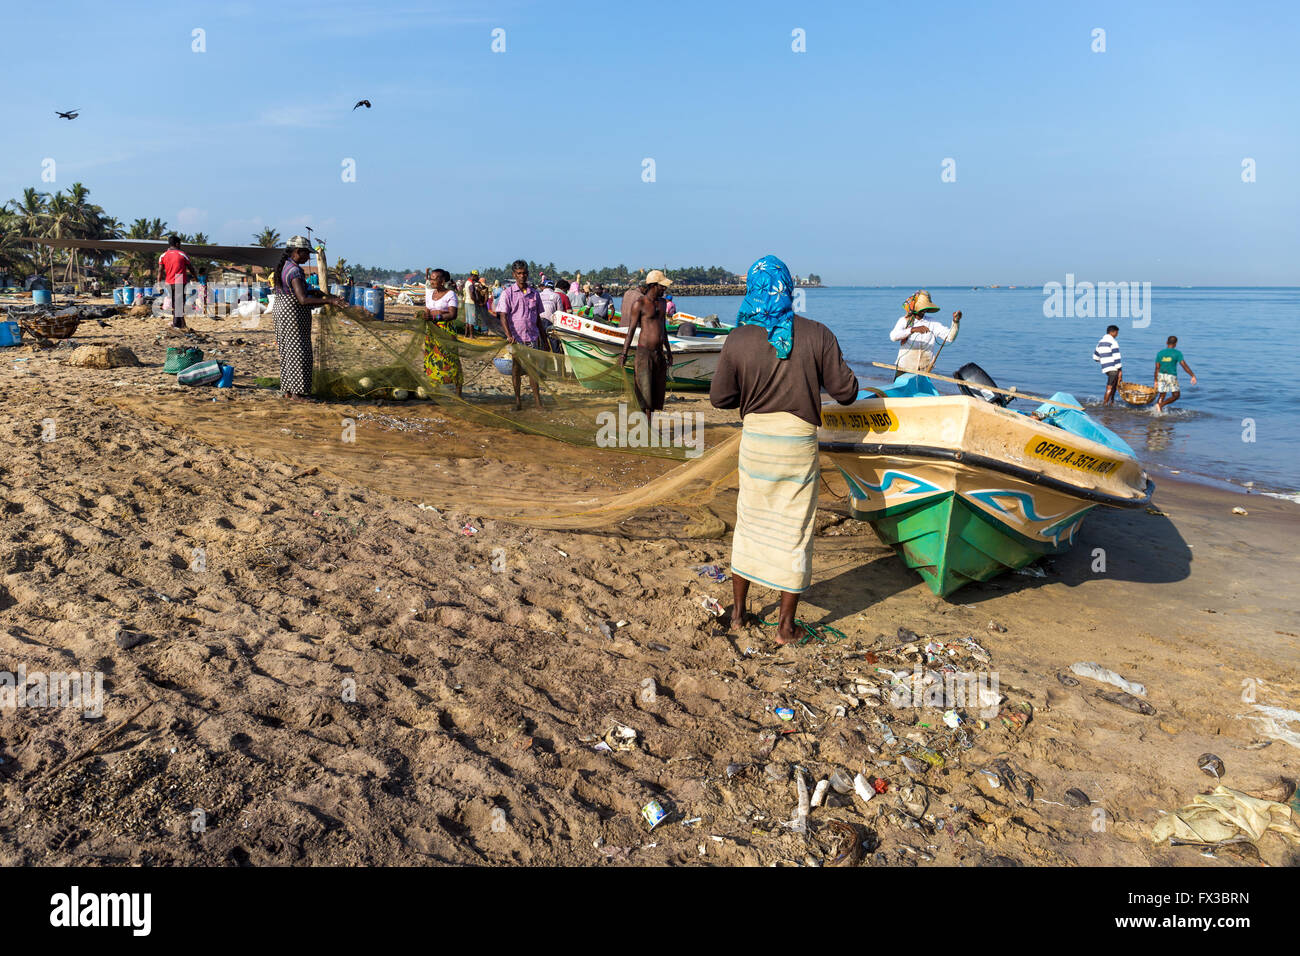 People repairing fishing nets amidst their colorful fishing boats at Negombo Beach, Sri Lanka Stock Photo